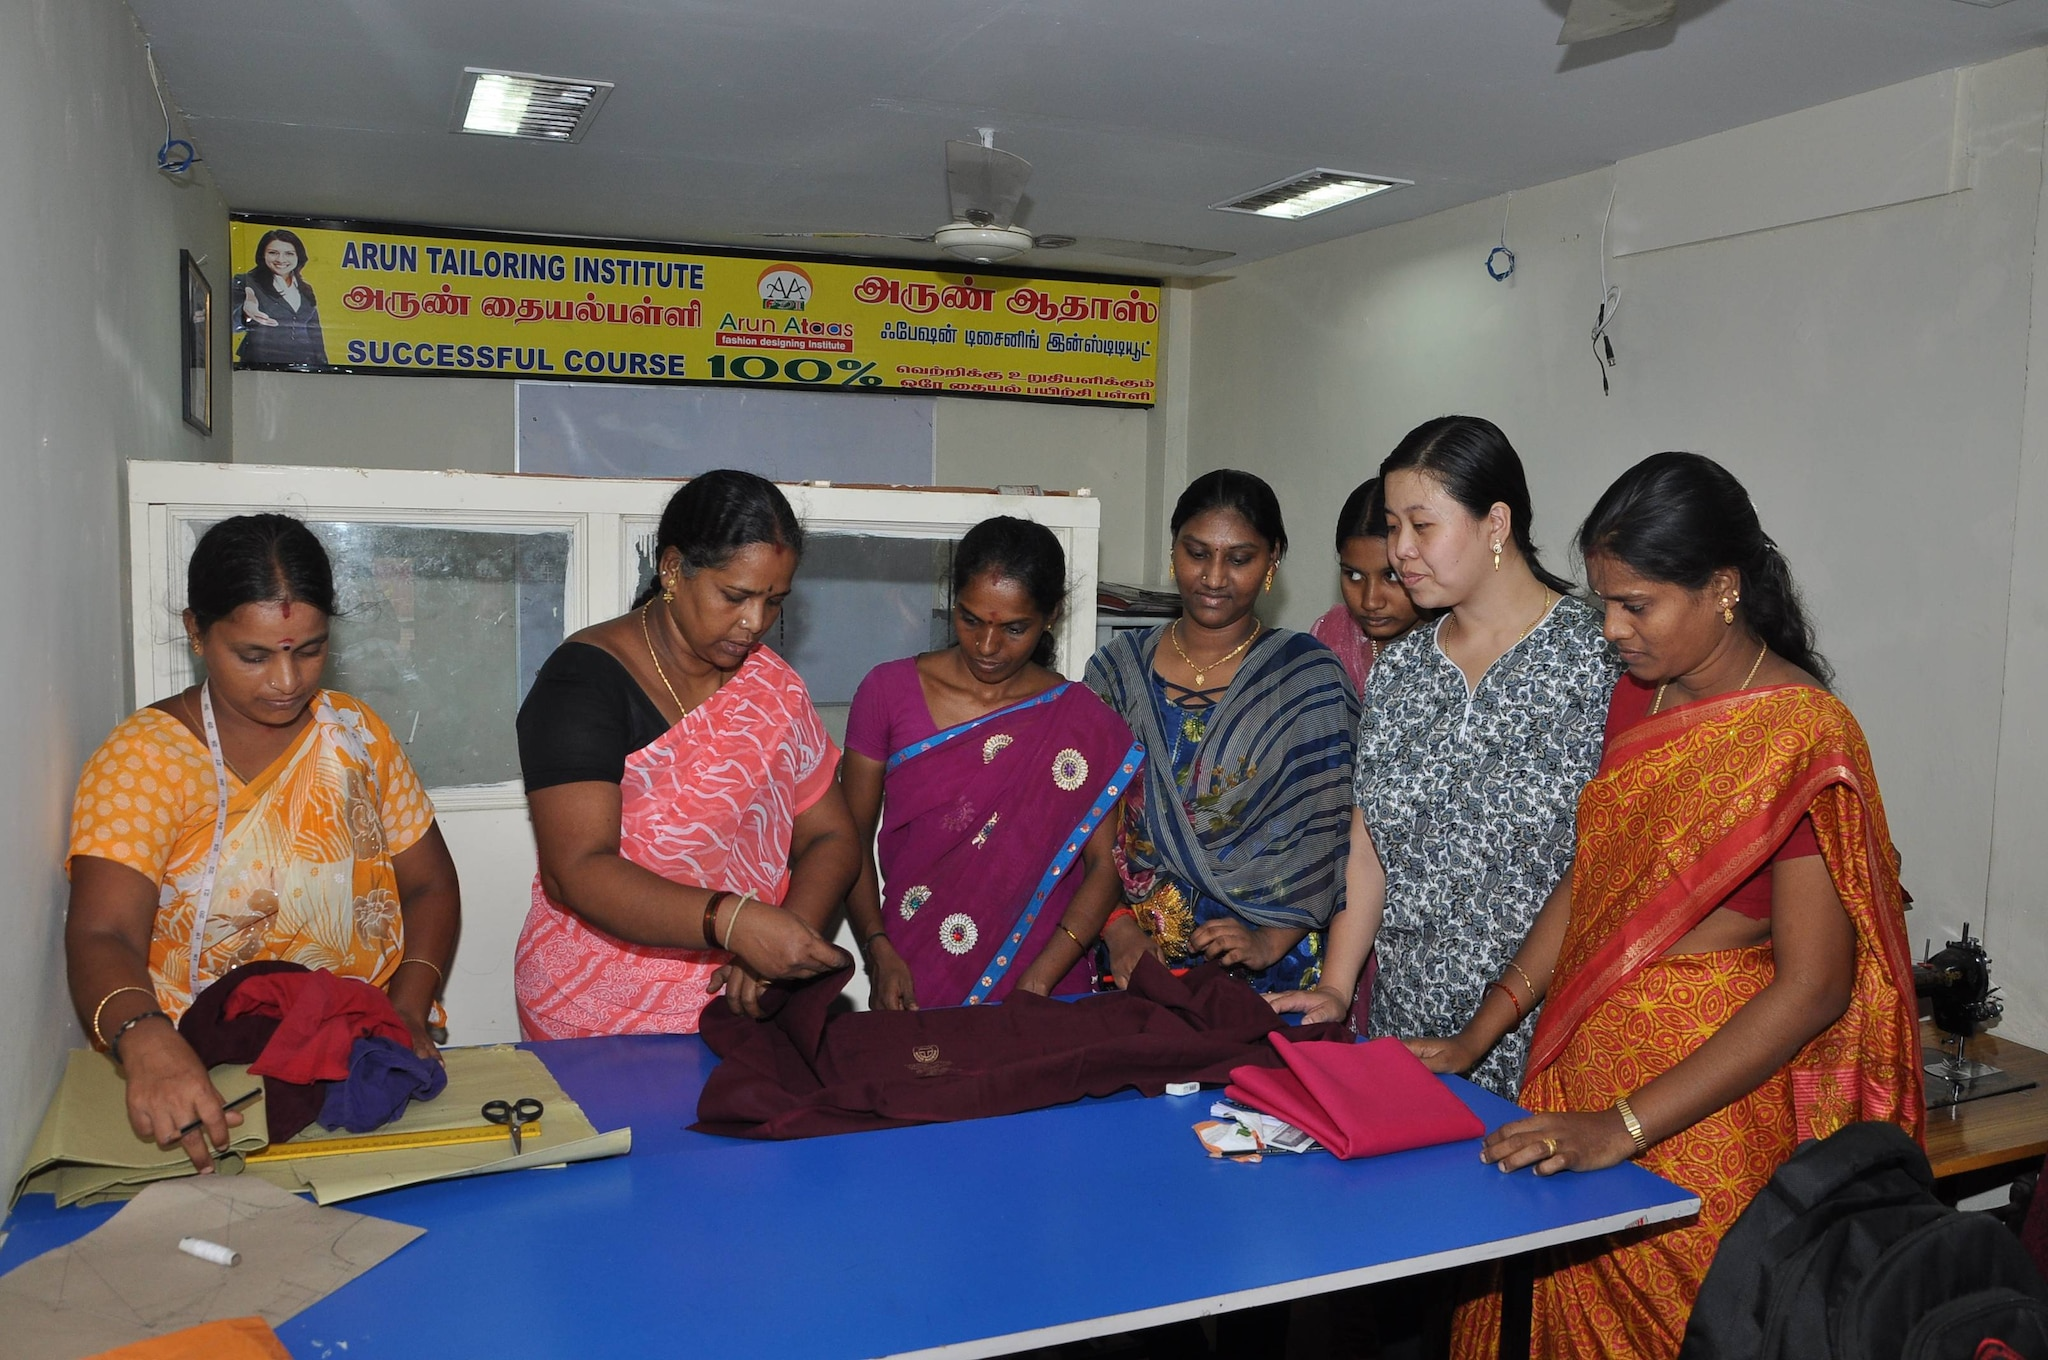 Arun Tailoring Institute Fashion Designing Mylapore Tailoring Classes In Chennai Justdial